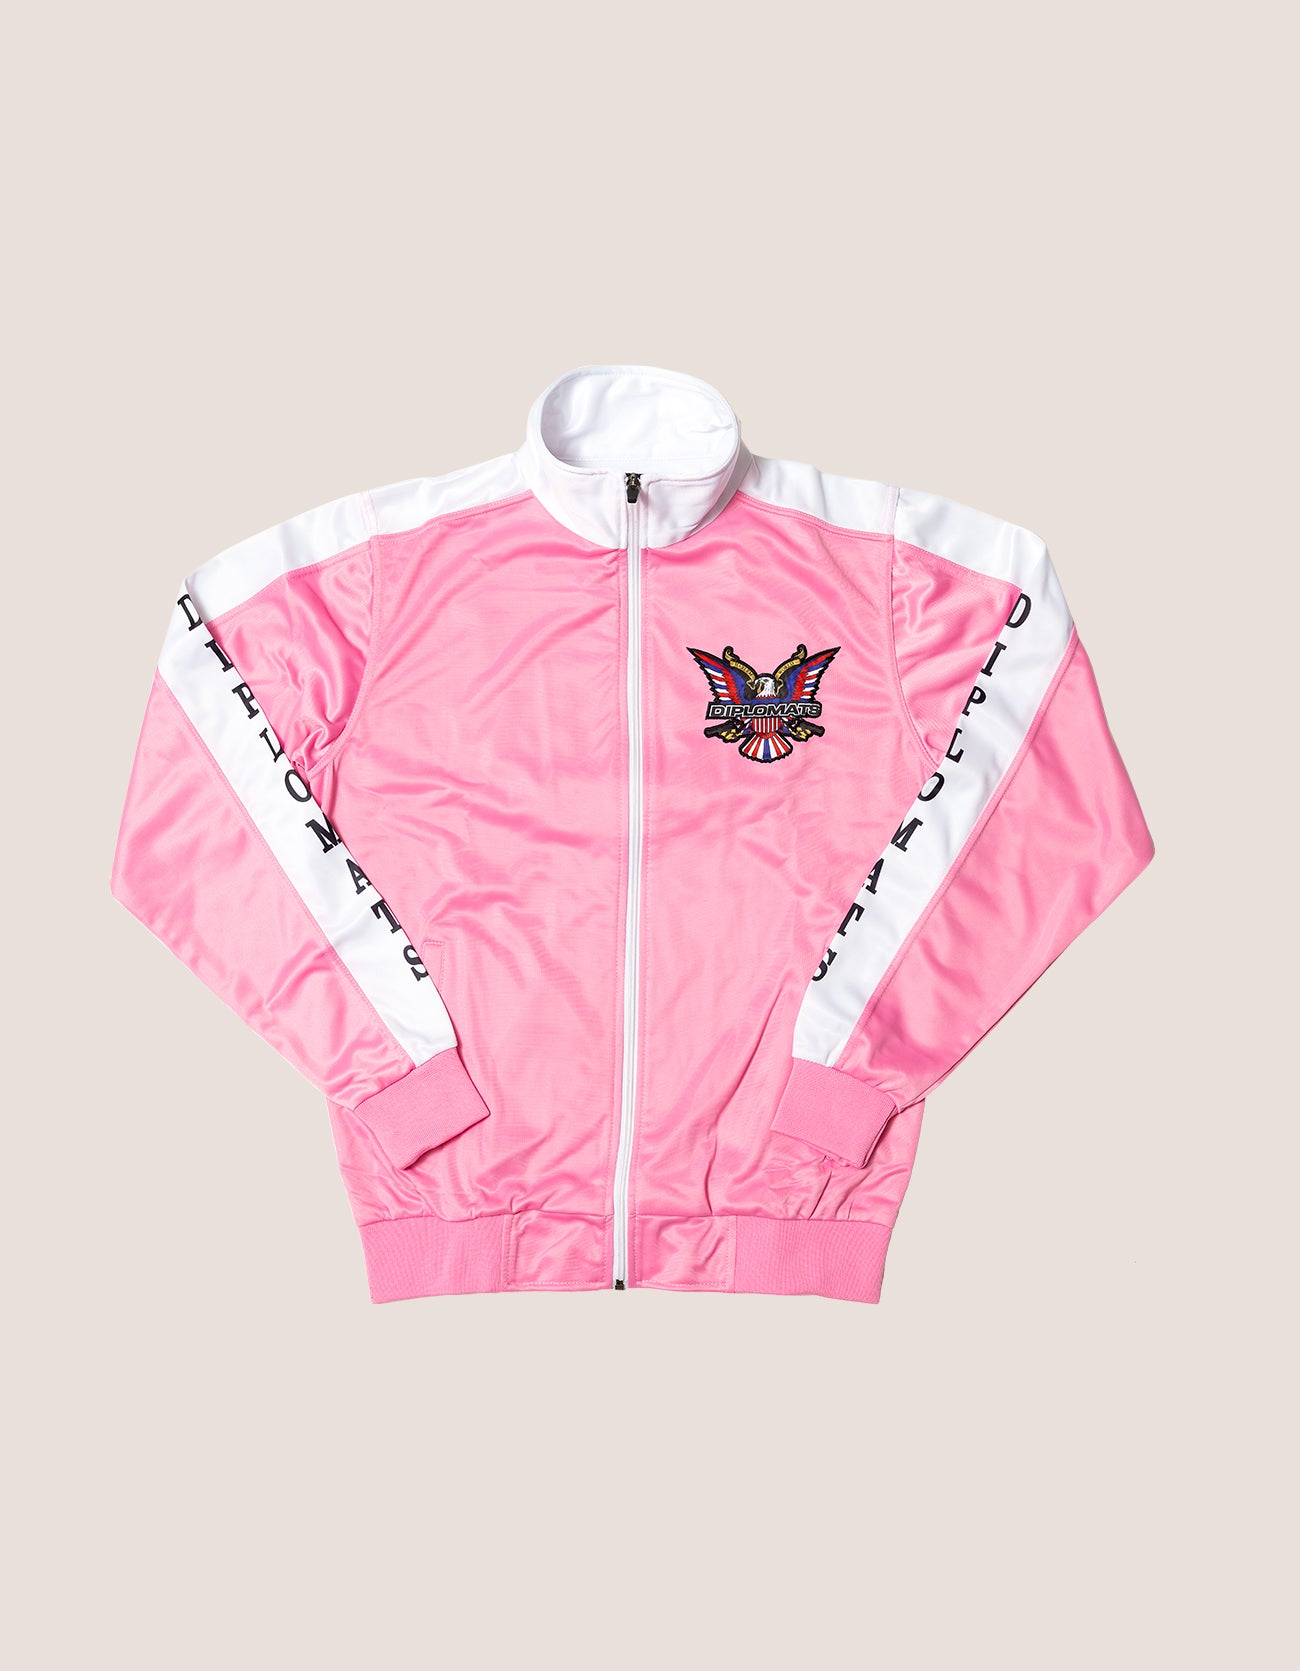 DIPSET Couture Pink/White Classic Track Suit